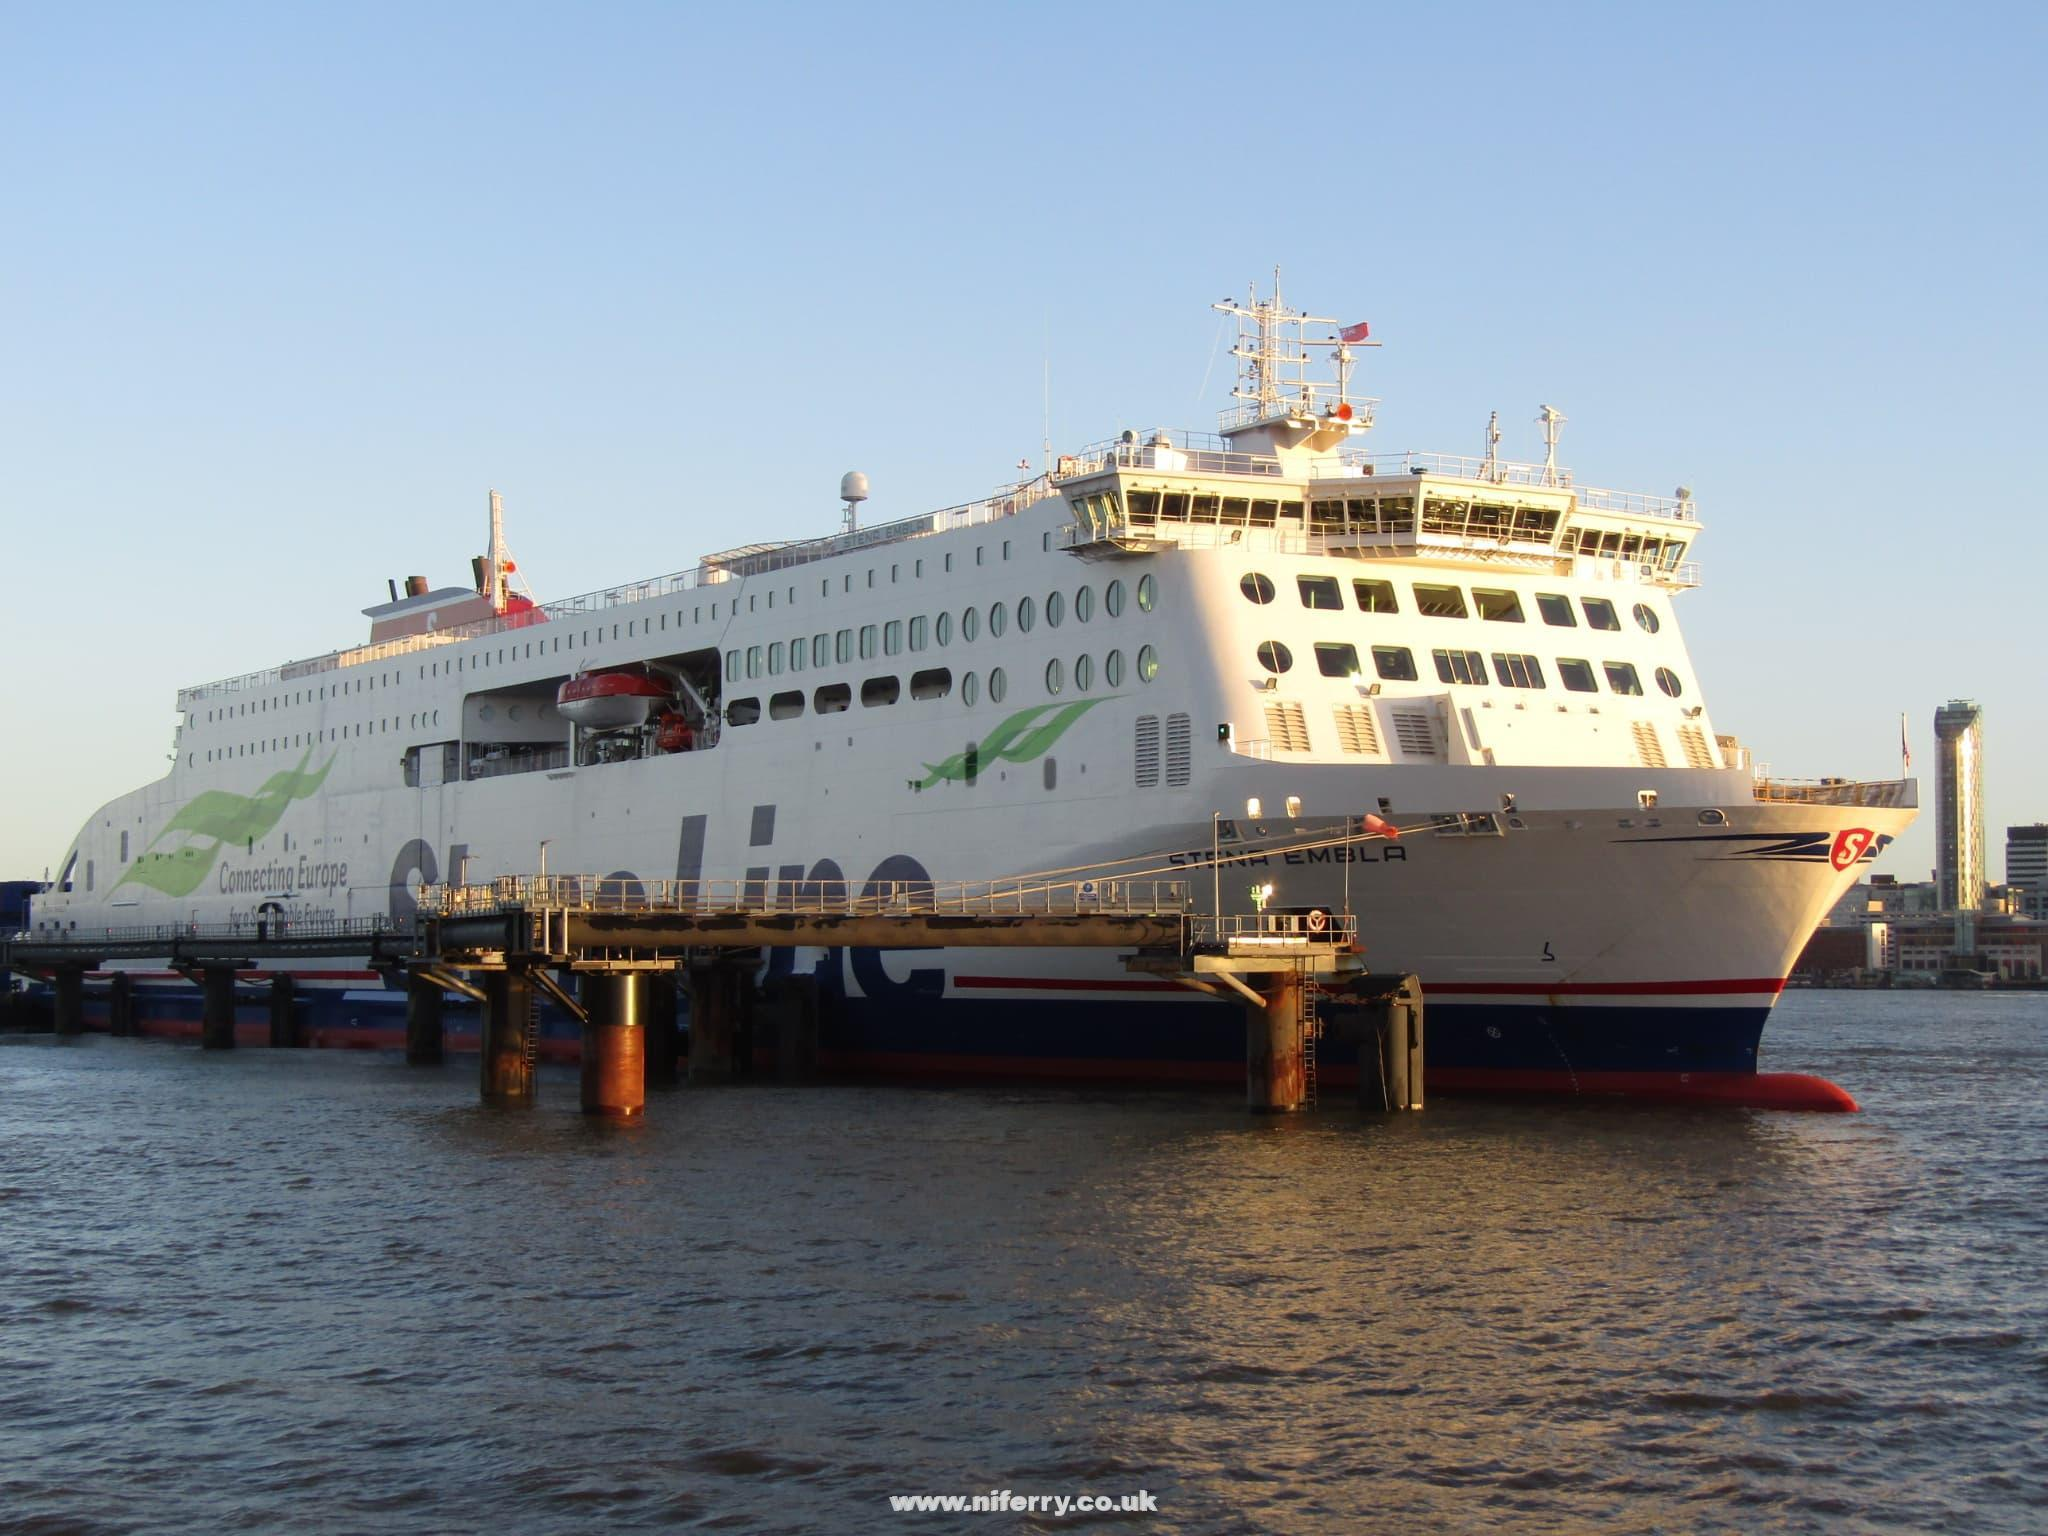 STENA EMBLA seen at Birkenhead on the day of her first arrival at the port, 25.01.2021. She made her first departure from the port to Belfast that night. Copyright © Rob Foy.